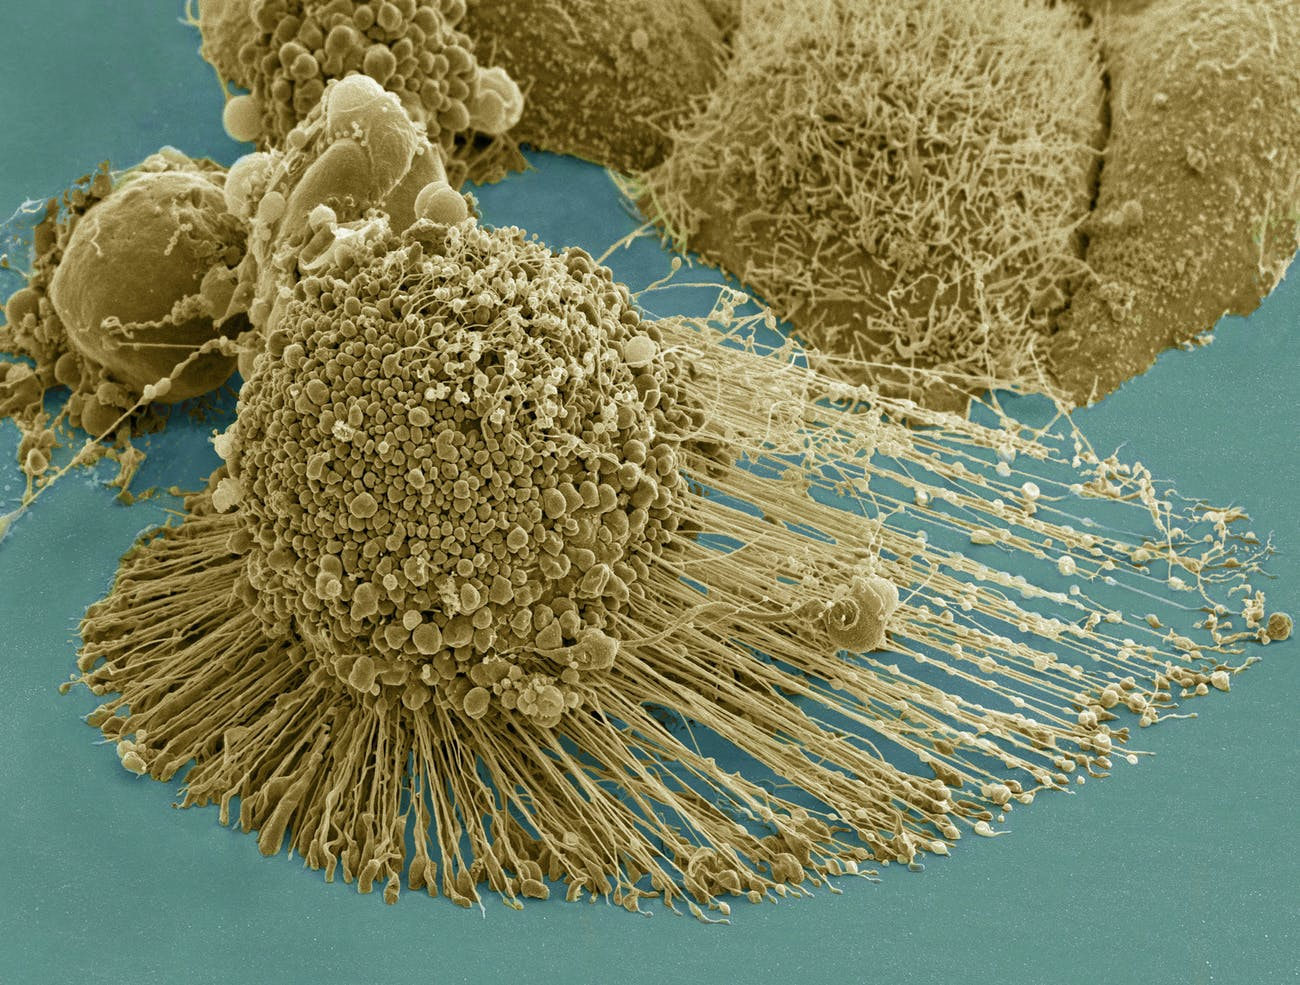 Title: HeLa-IV Description: Scanning electron micrograph of an apoptotic HeLa cell. Zeiss Merlin HR-SEM. Categories: Research in NIH Labs and Clinics Type: Color, Photo Source: National Institutes of Health (NIH) Date Created: 2013 Date Added: 8/9/2013